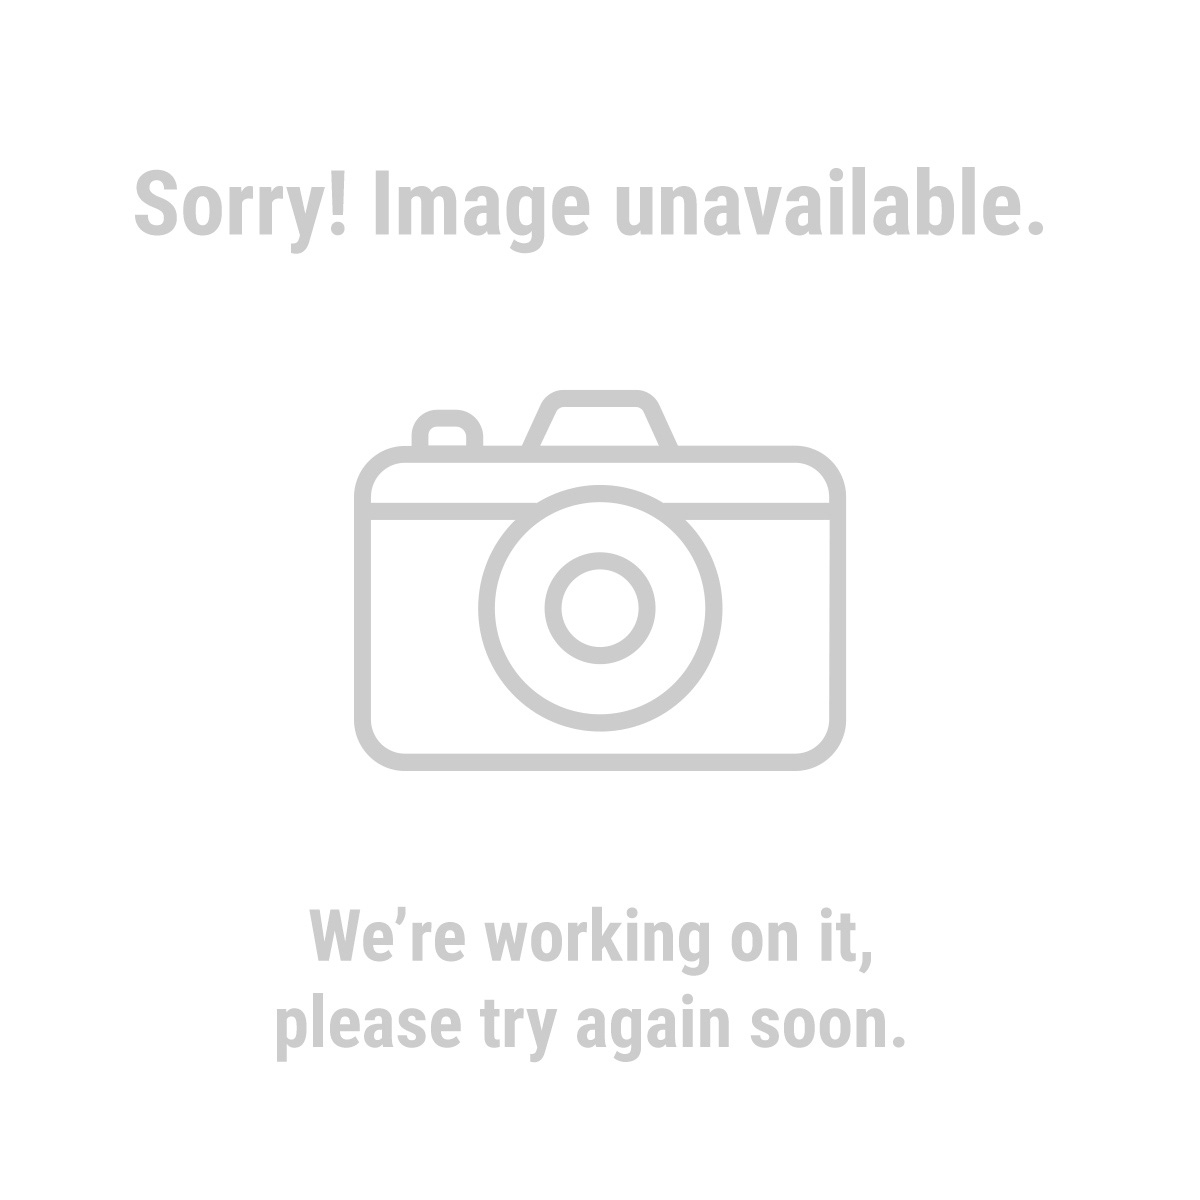 Pittsburgh 66319 Digital Thickness Gauge